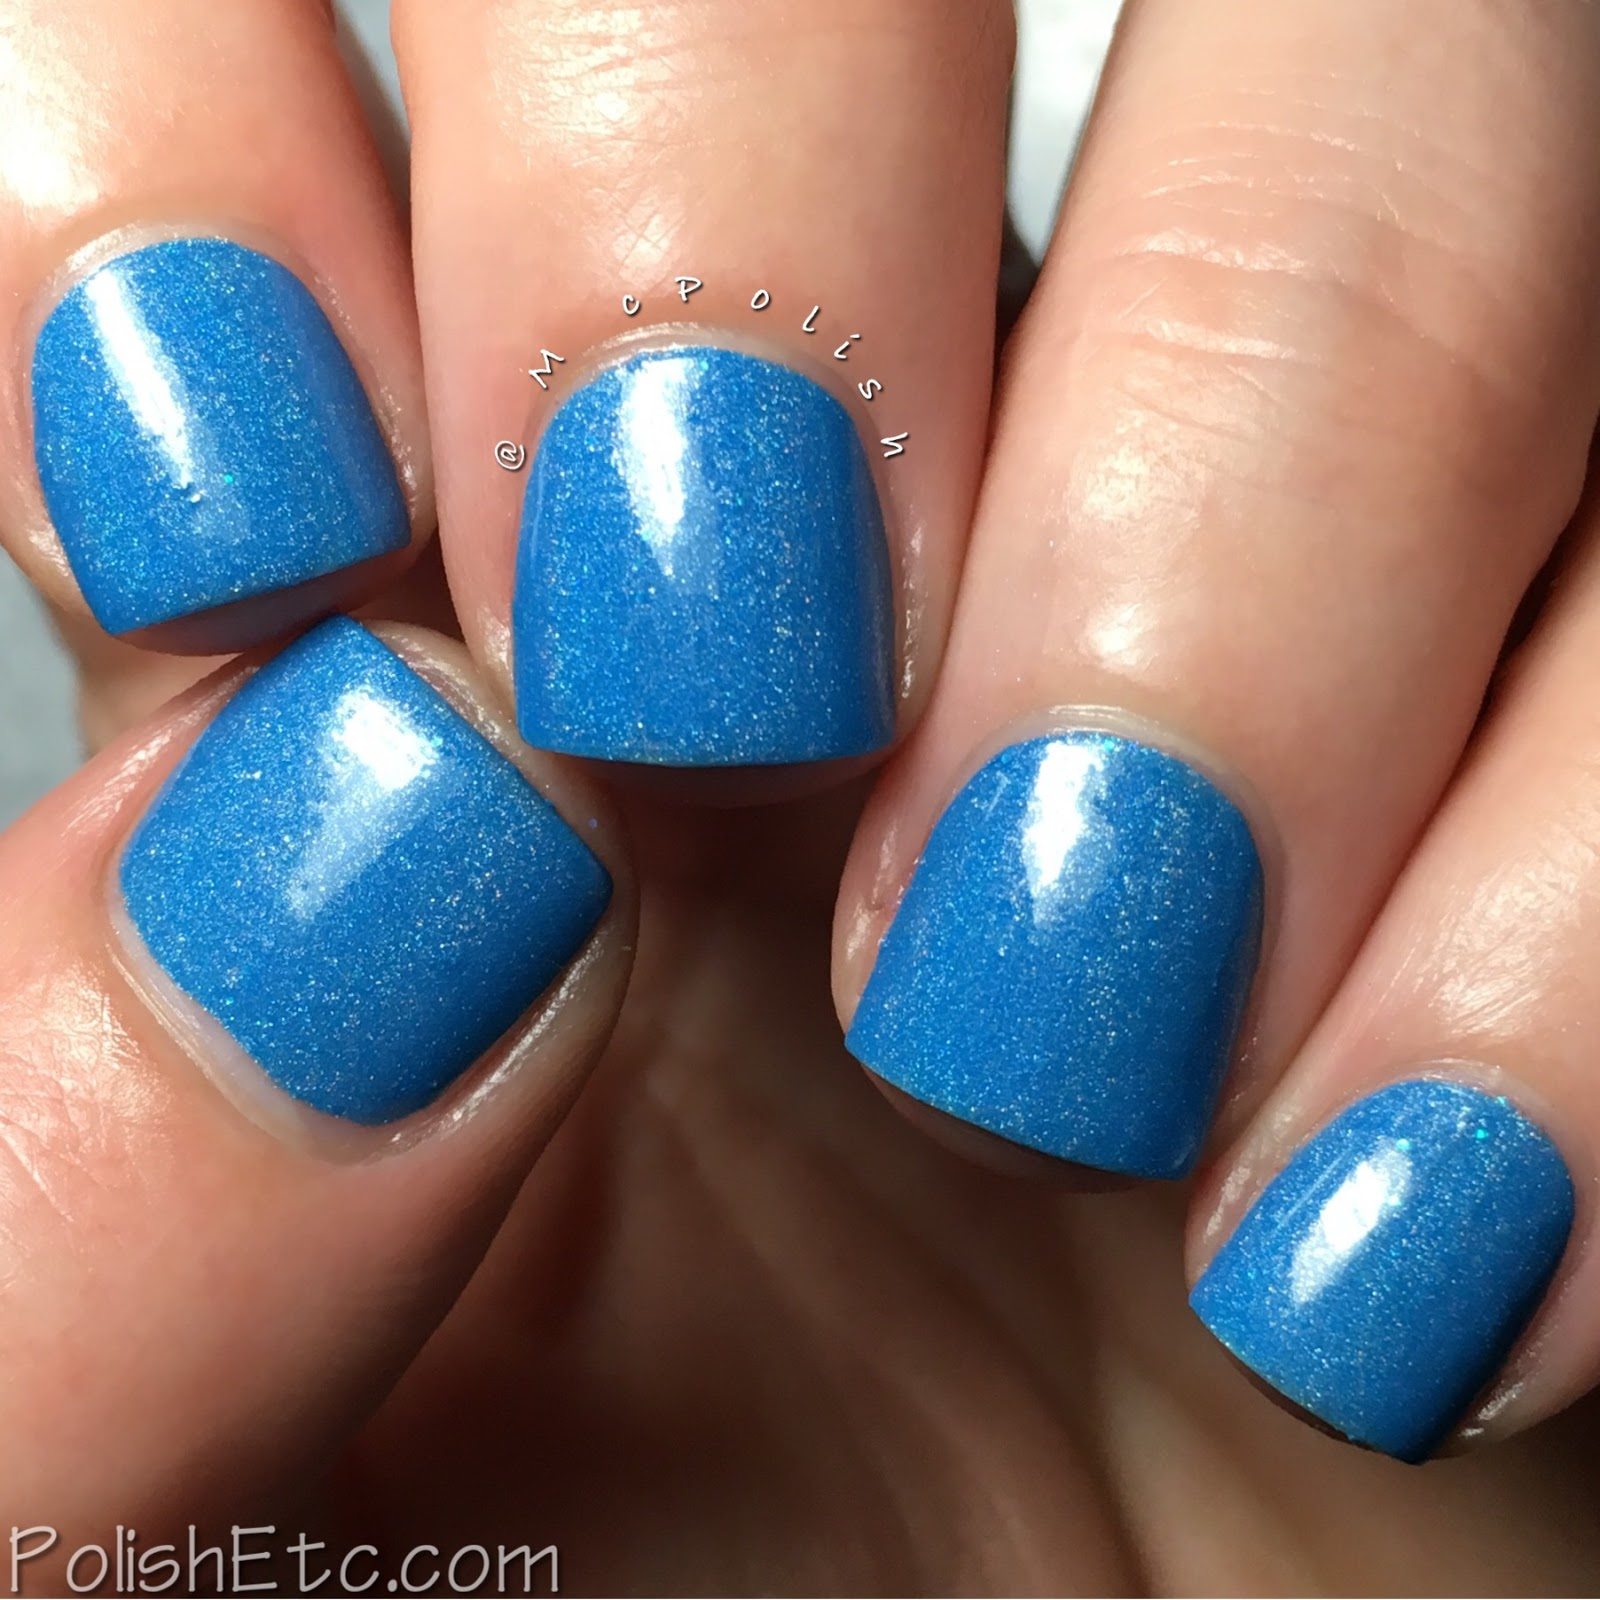 Chirality Polish - Mosura no Uta Collection - McPolish - Elias